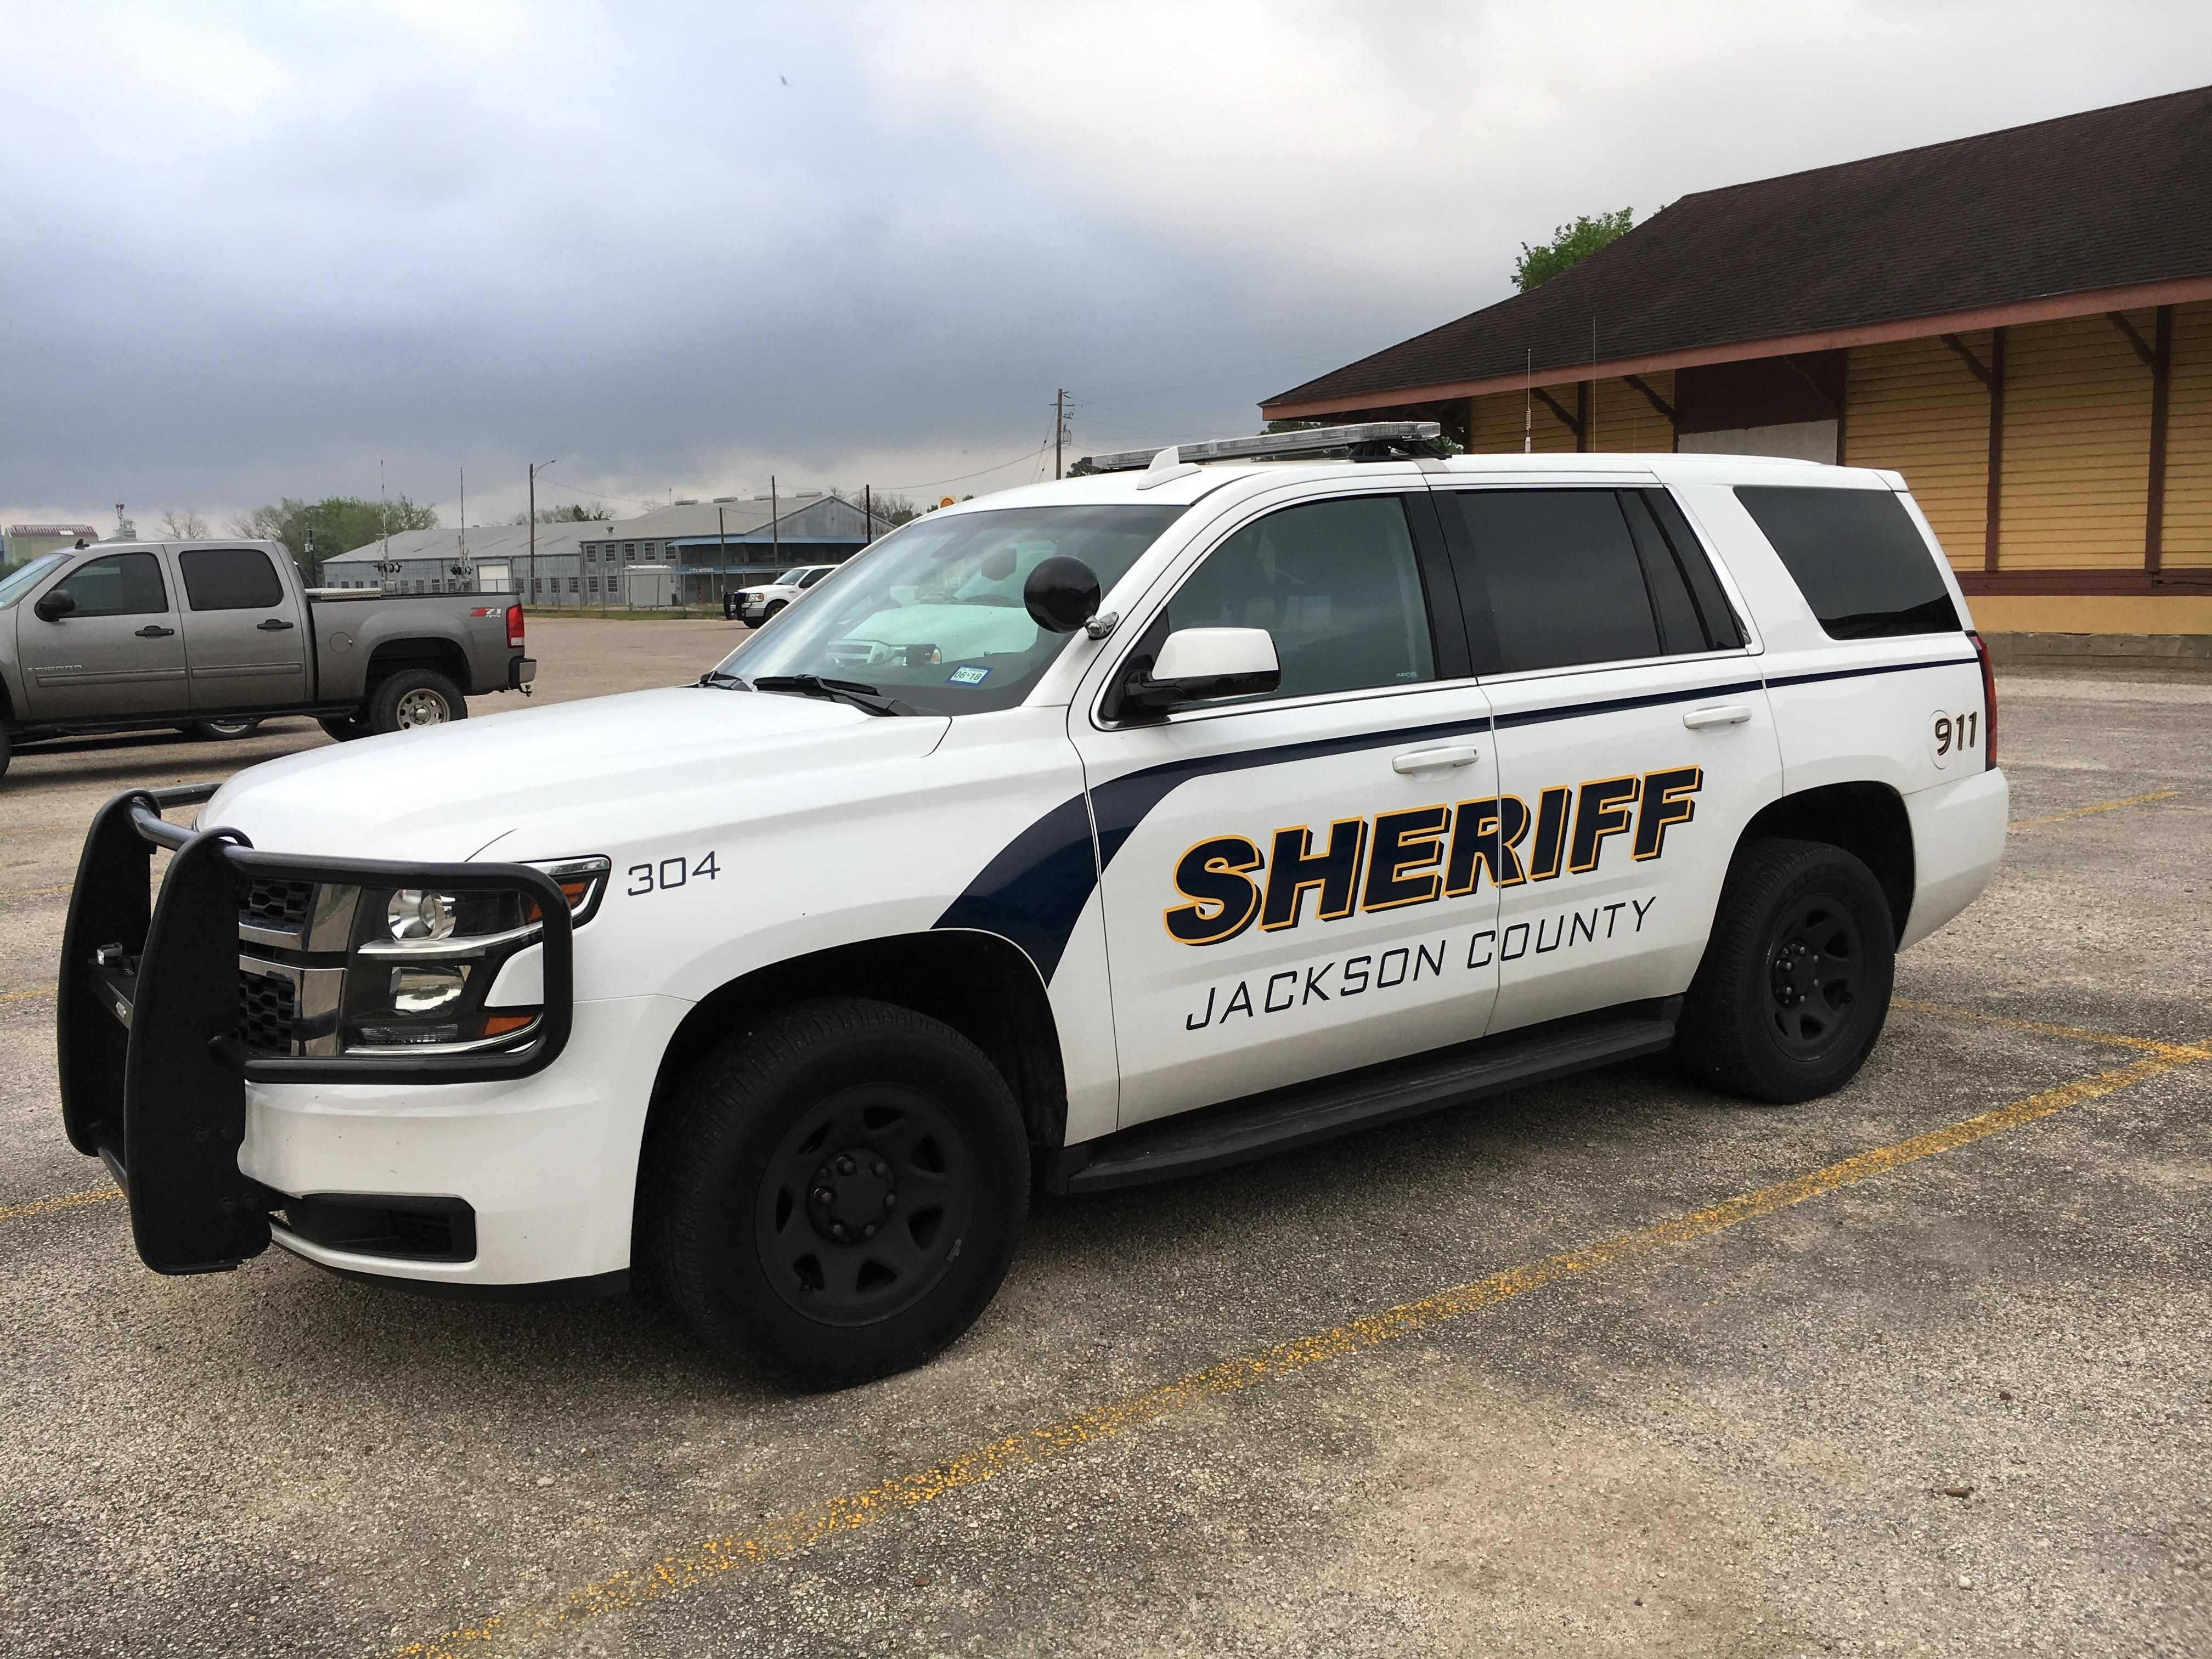 Jackson County Sheriff S Office Chevy Tahoe Texas Police